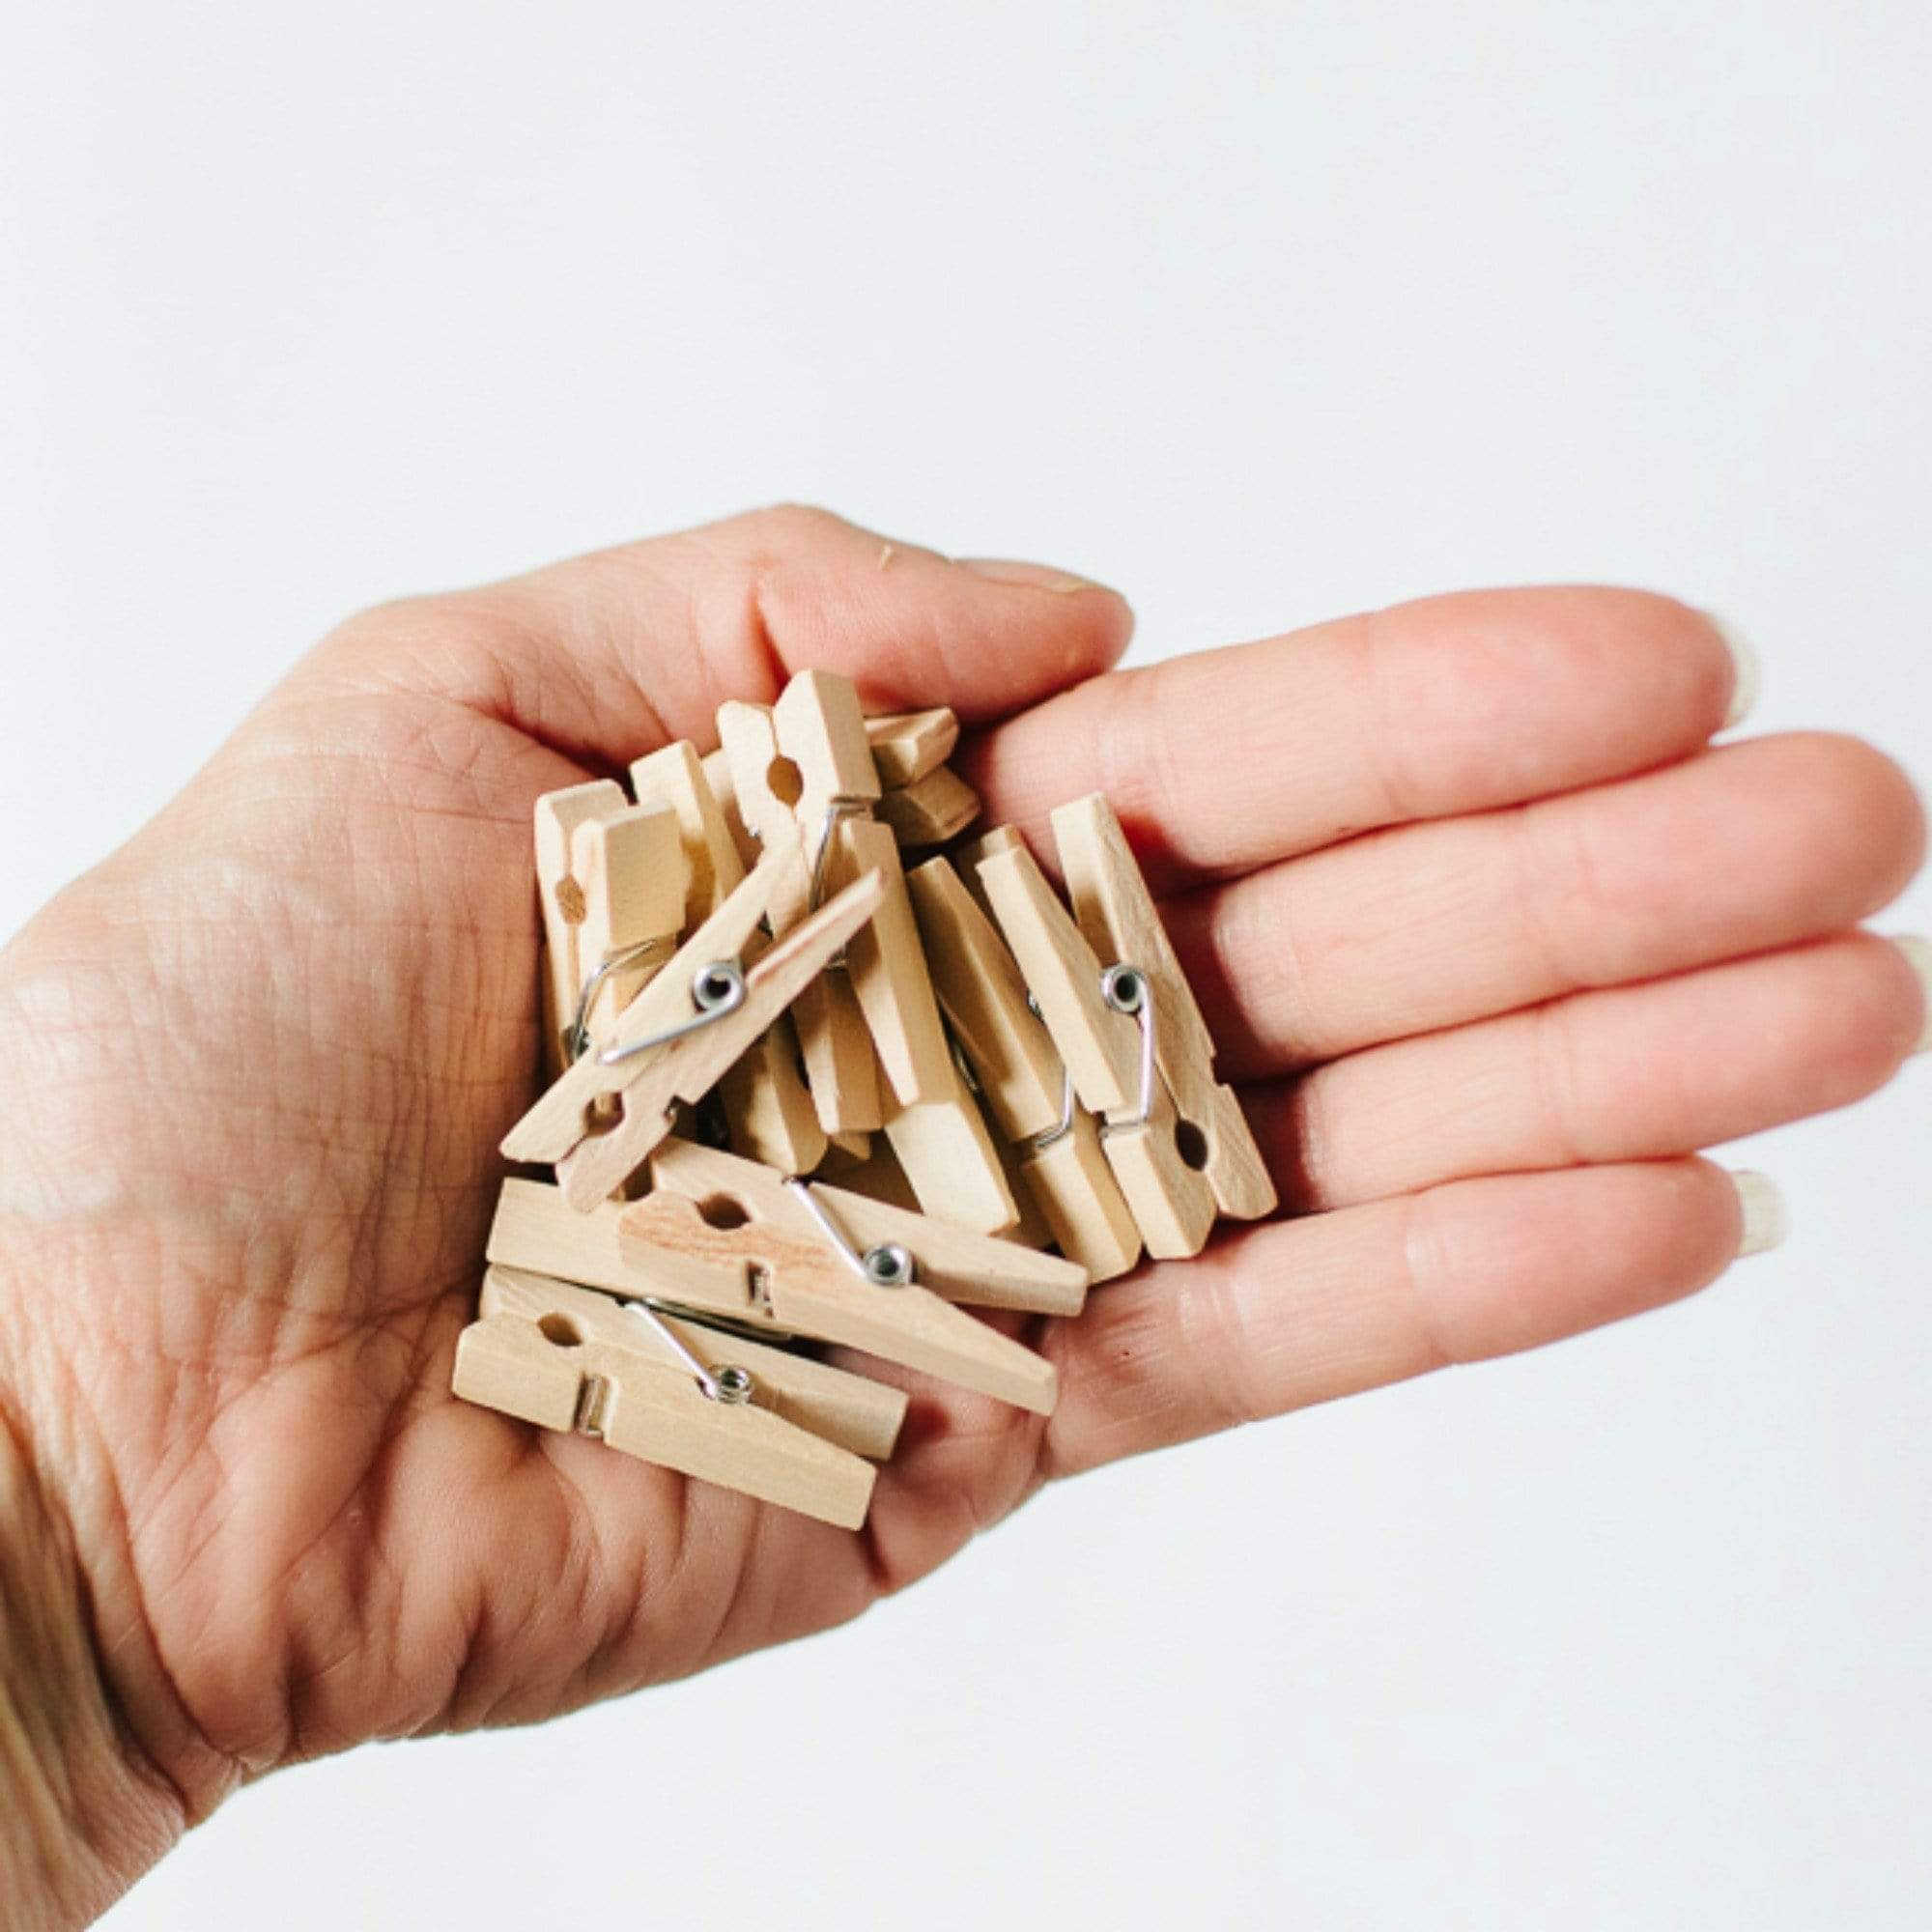 Mini Pink Wooden Pegs (12 pack)